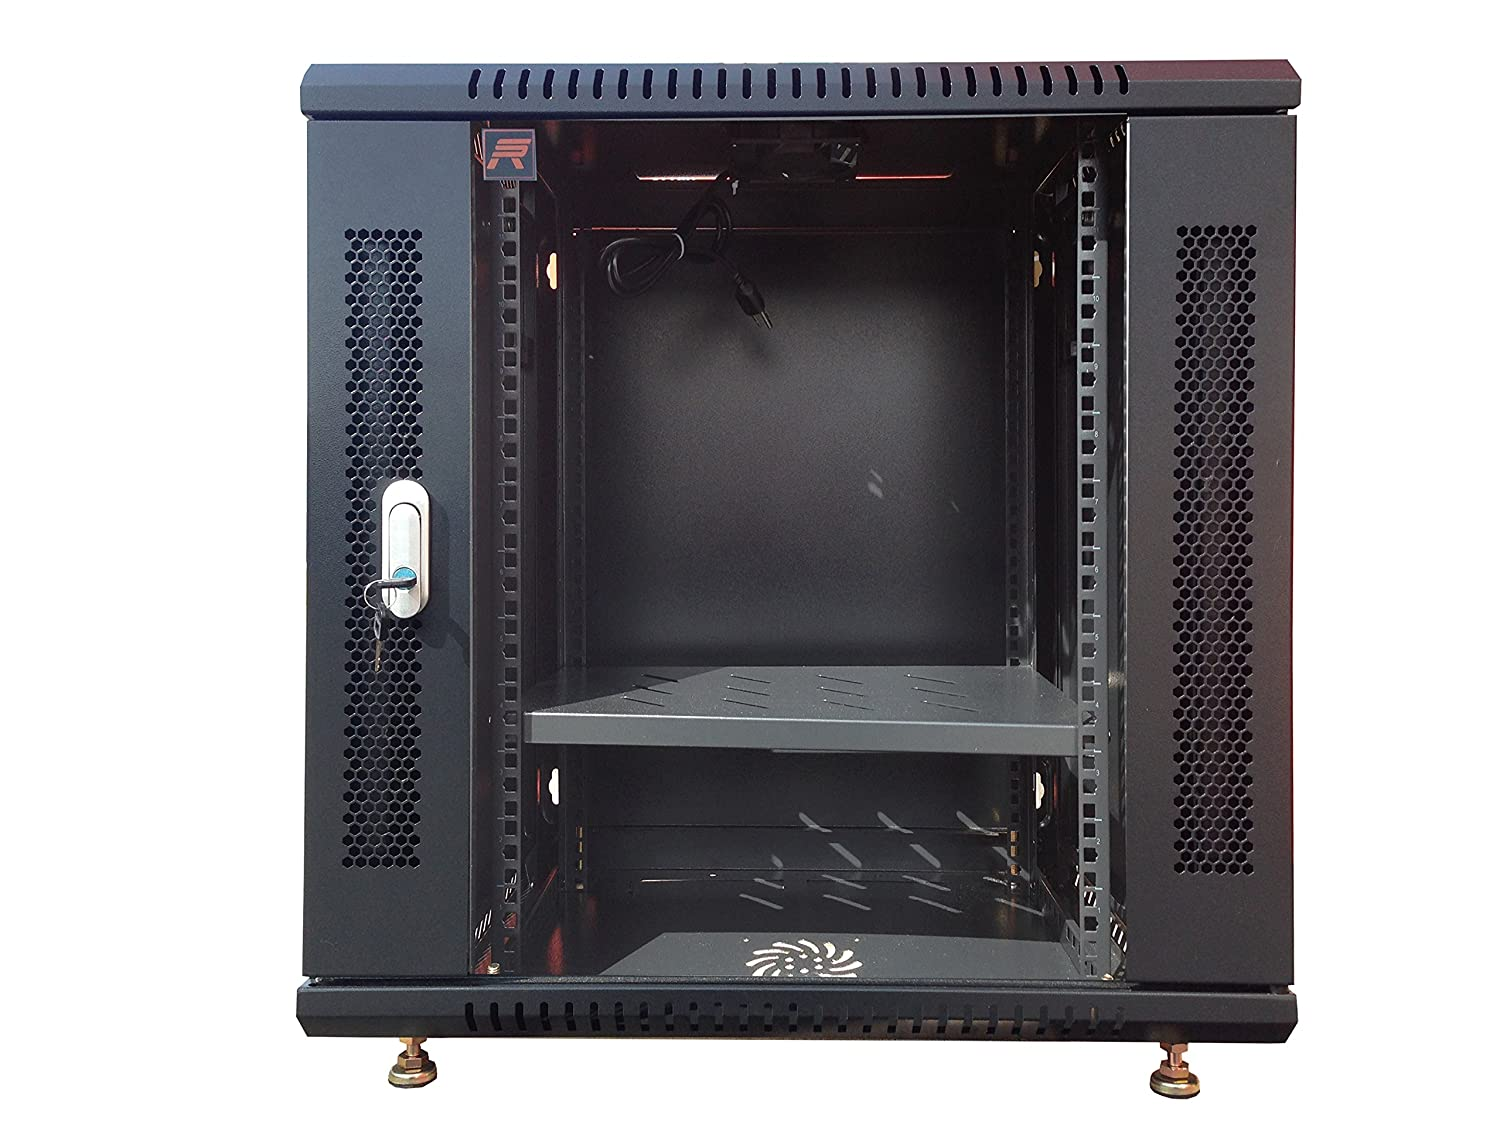 9U Server Rack Cabinet Enclosure. Accessories Free! Vented Shelf, Cooling Fan,Hardware. Wall Mount 18' Deep Fully Loaded Lockable Enclosure Box Hardware. Wall Mount 18 Deep Fully Loaded Lockable Enclosure Box Sysracks